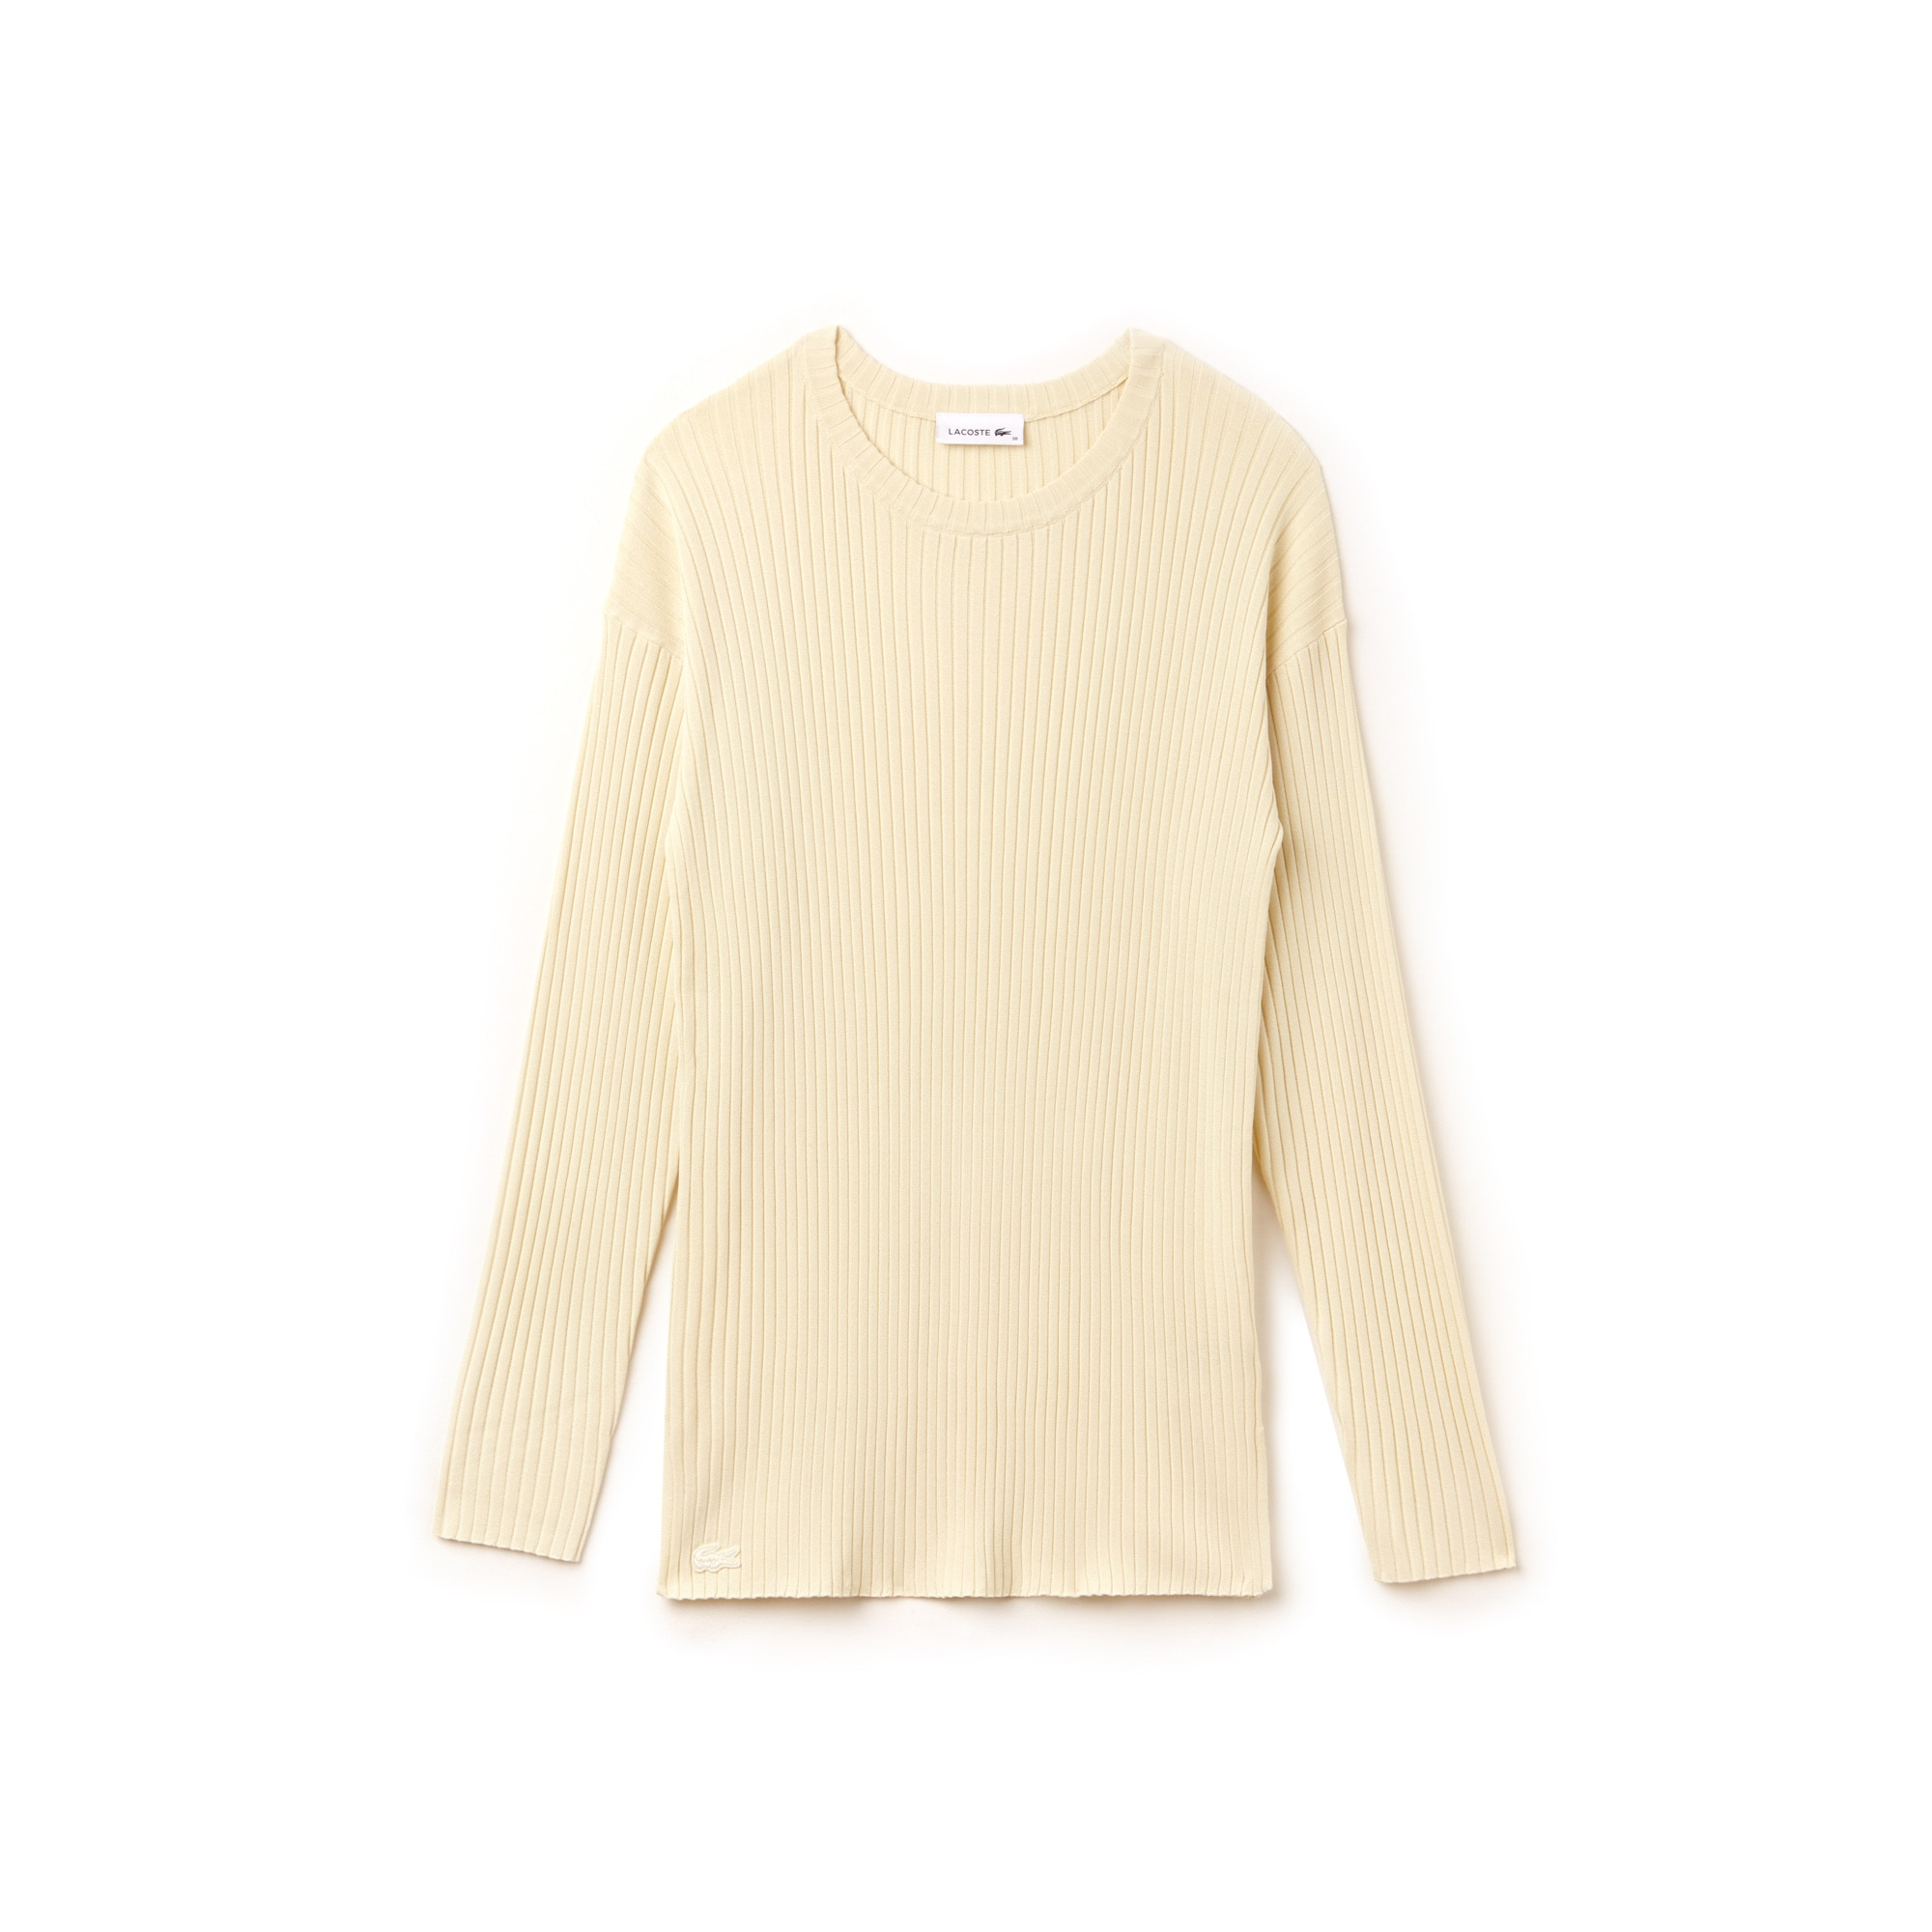 Women's Crew Neck Ribbed Knit Sweater